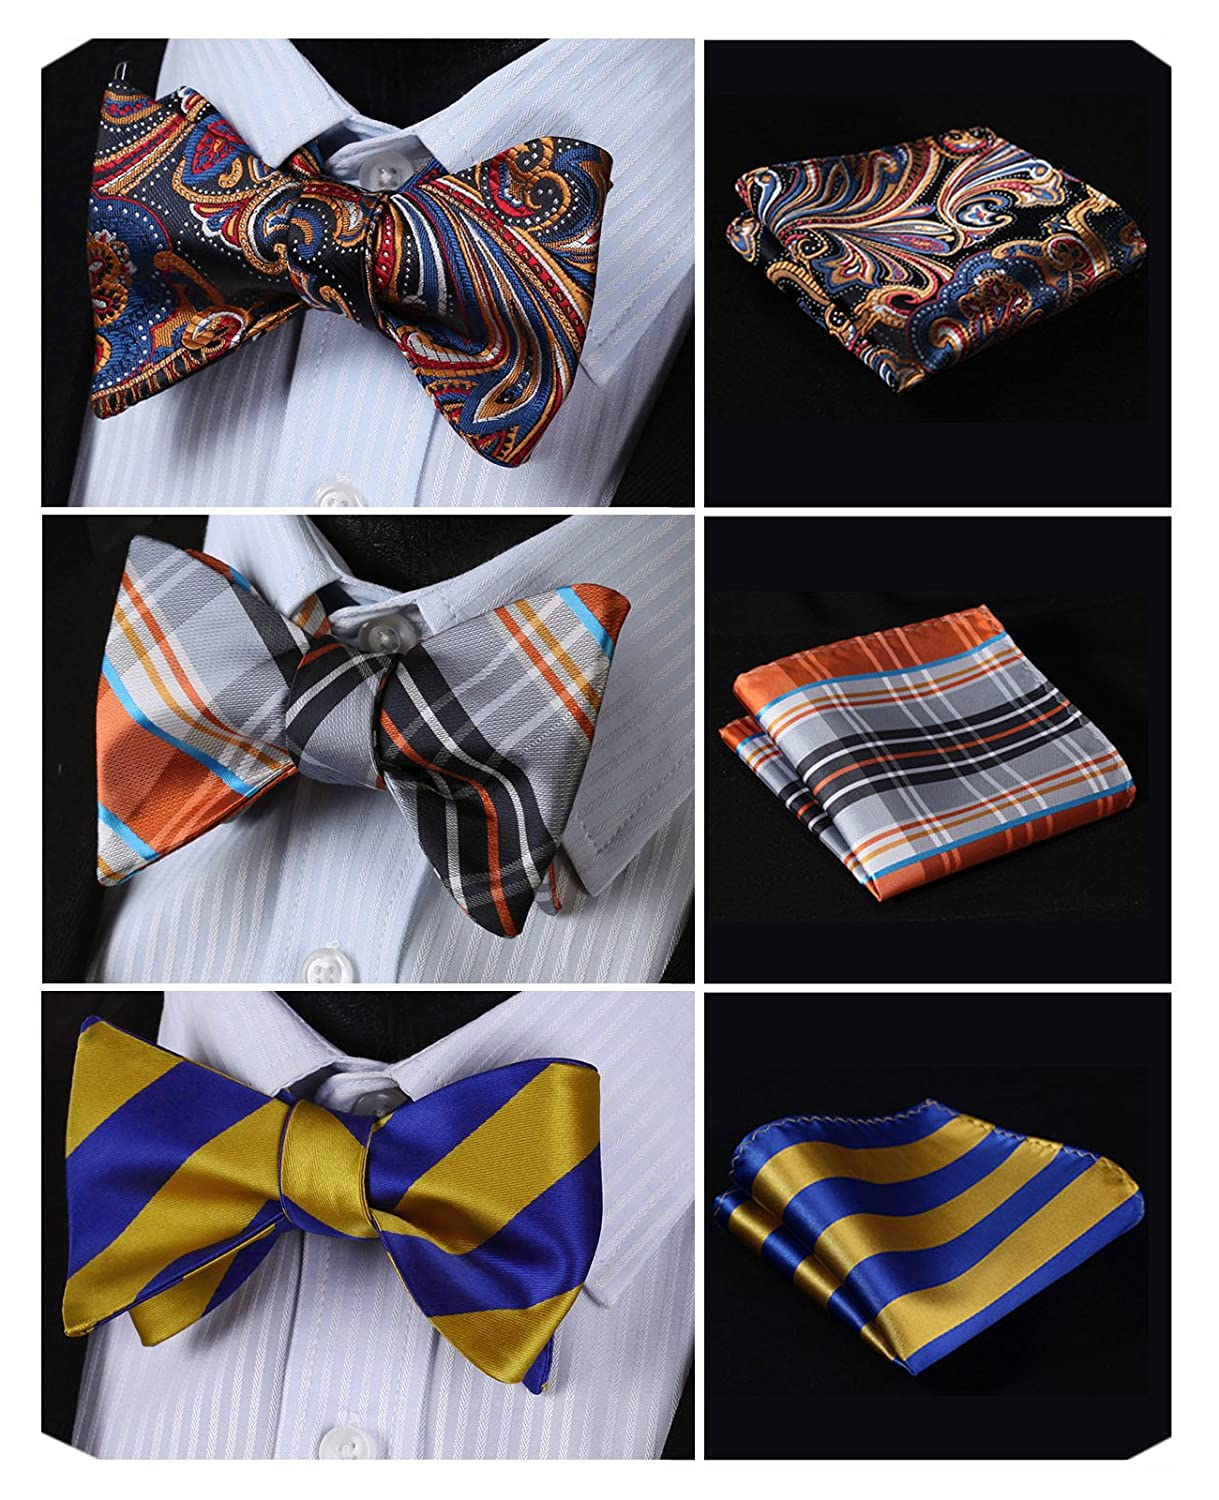 HISDERN 3pcs Classic Men's Self-Tie Bow tie & Pocket Square - Multiple Sets BA3001